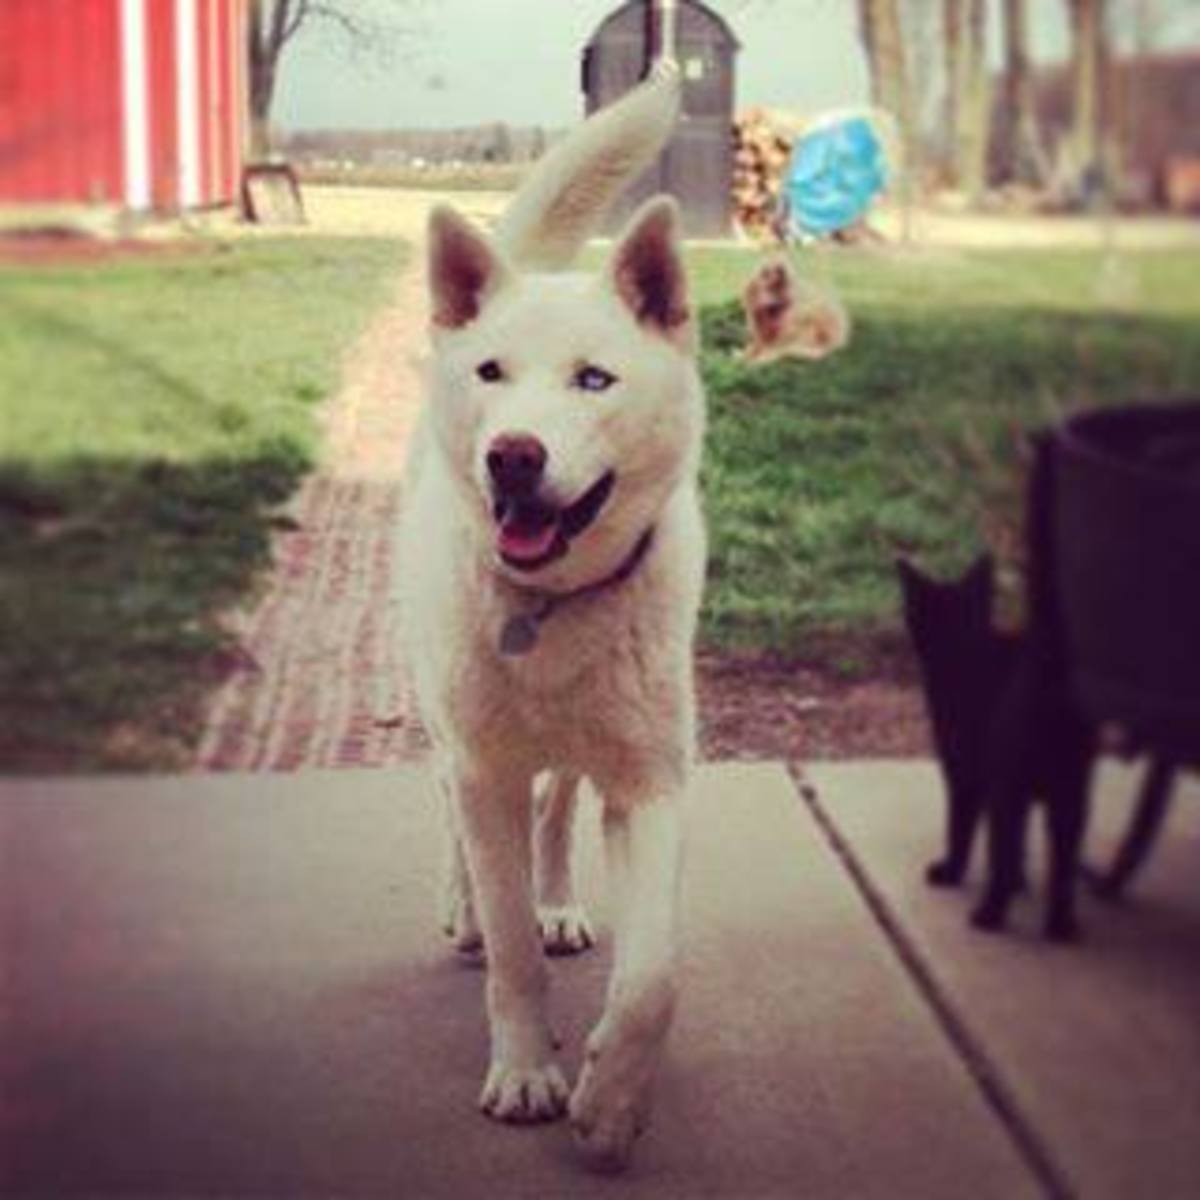 Rocket is an all-white male husky with one blue eye and one brown eye. He went missing on May 10th, 2013 in Central Indiana. Have you seen him?